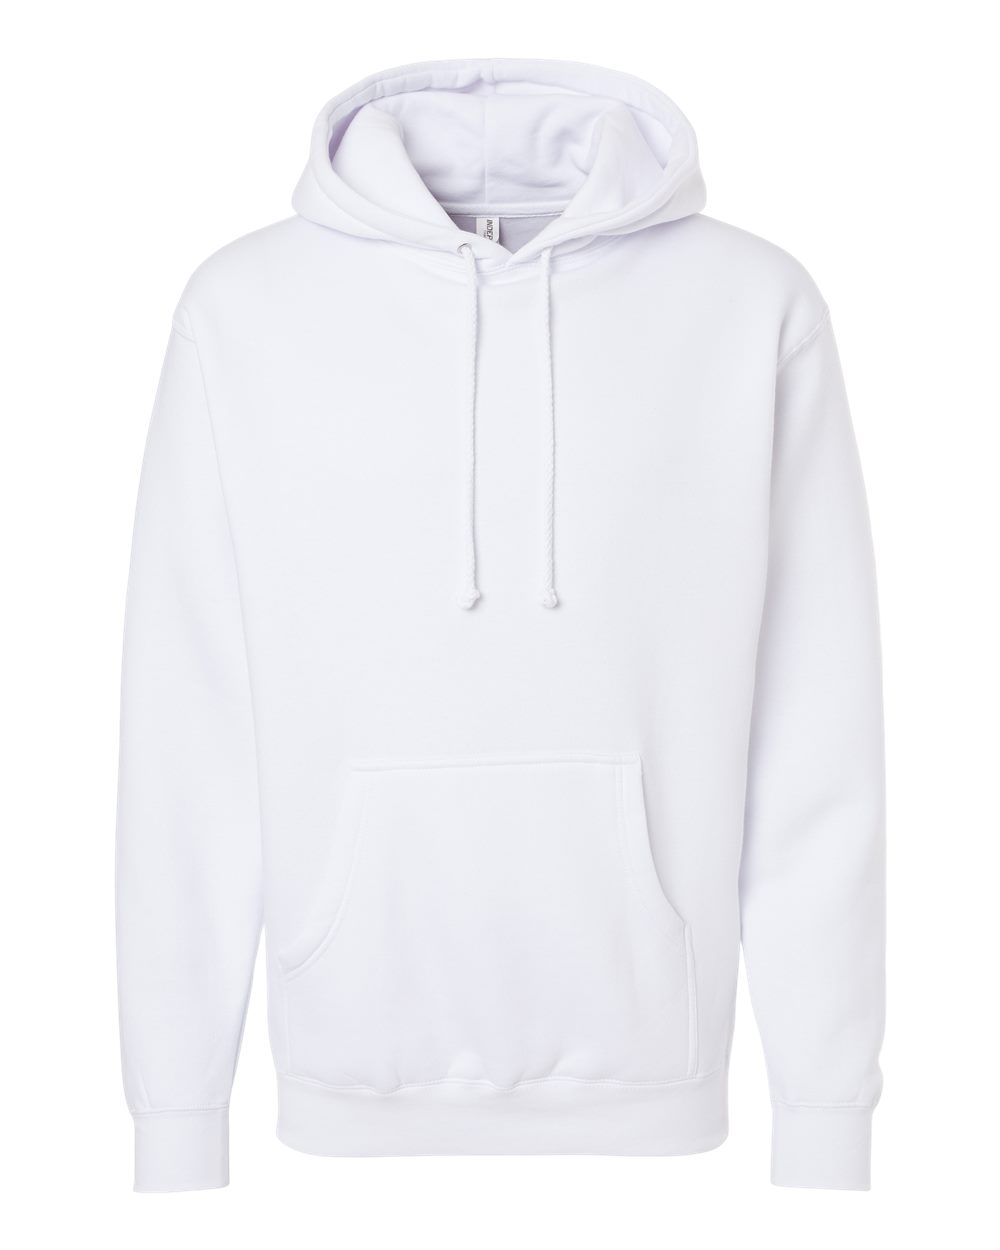 Independent-Trading-Co-Mens-Hooded-Pullover-Sweatshirt-IND4000-up-to-3XL miniature 87